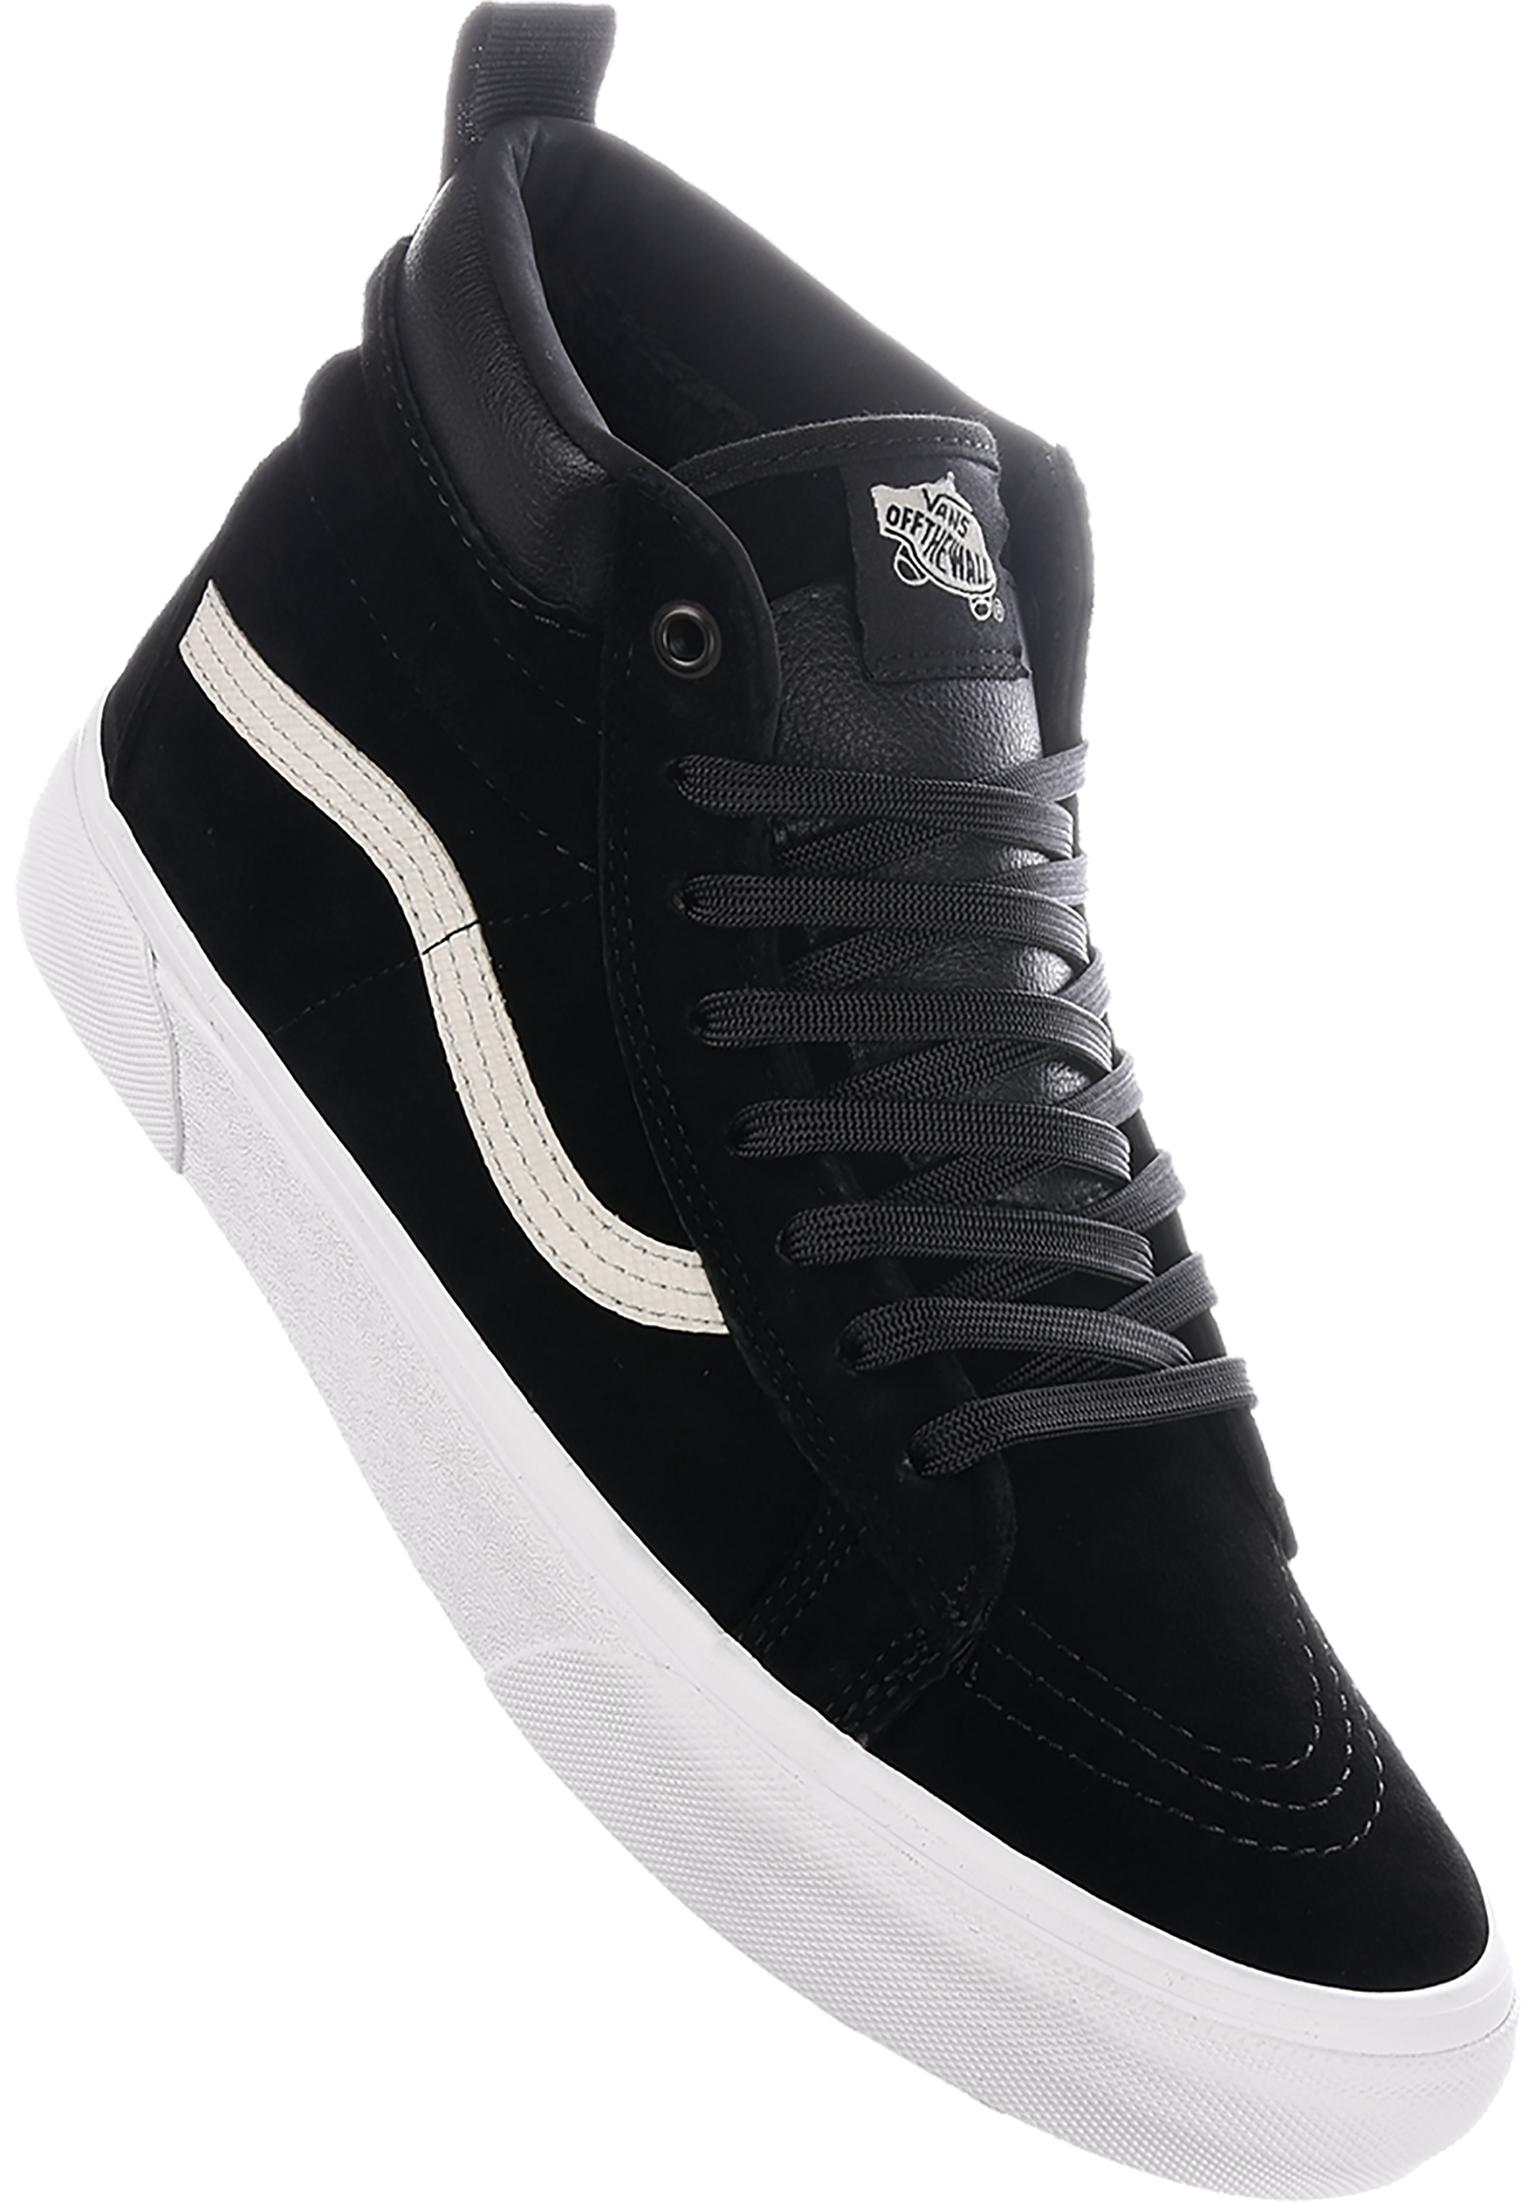 92d4d93e5371bd Sk8 Hi MTE Vans All Shoes in blacknight-truewhite for Men